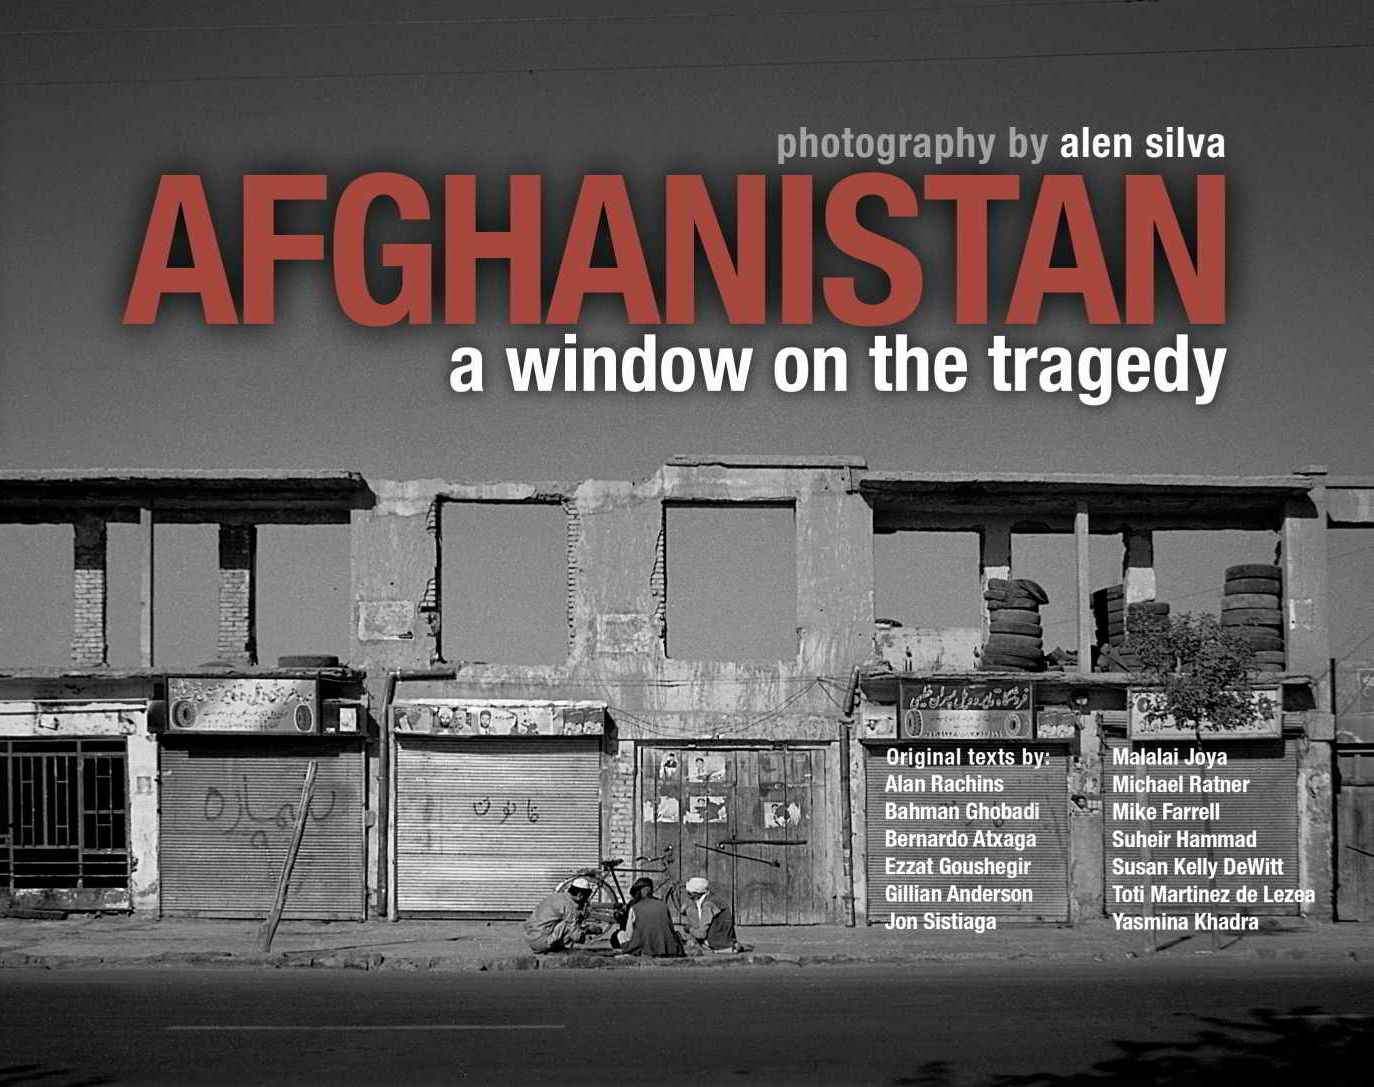 the tragedy of the war in afghanistan Afghanistan war: afghanistan war, international conflict beginning in 2001 that was triggered by the september 11 attacks us forces quickly toppled the taliban (the faction that ruled afghanistan and provided sanctuary for al-qaeda) in the first months of the war, only to face years of insurgency led by a reconstituted taliban.